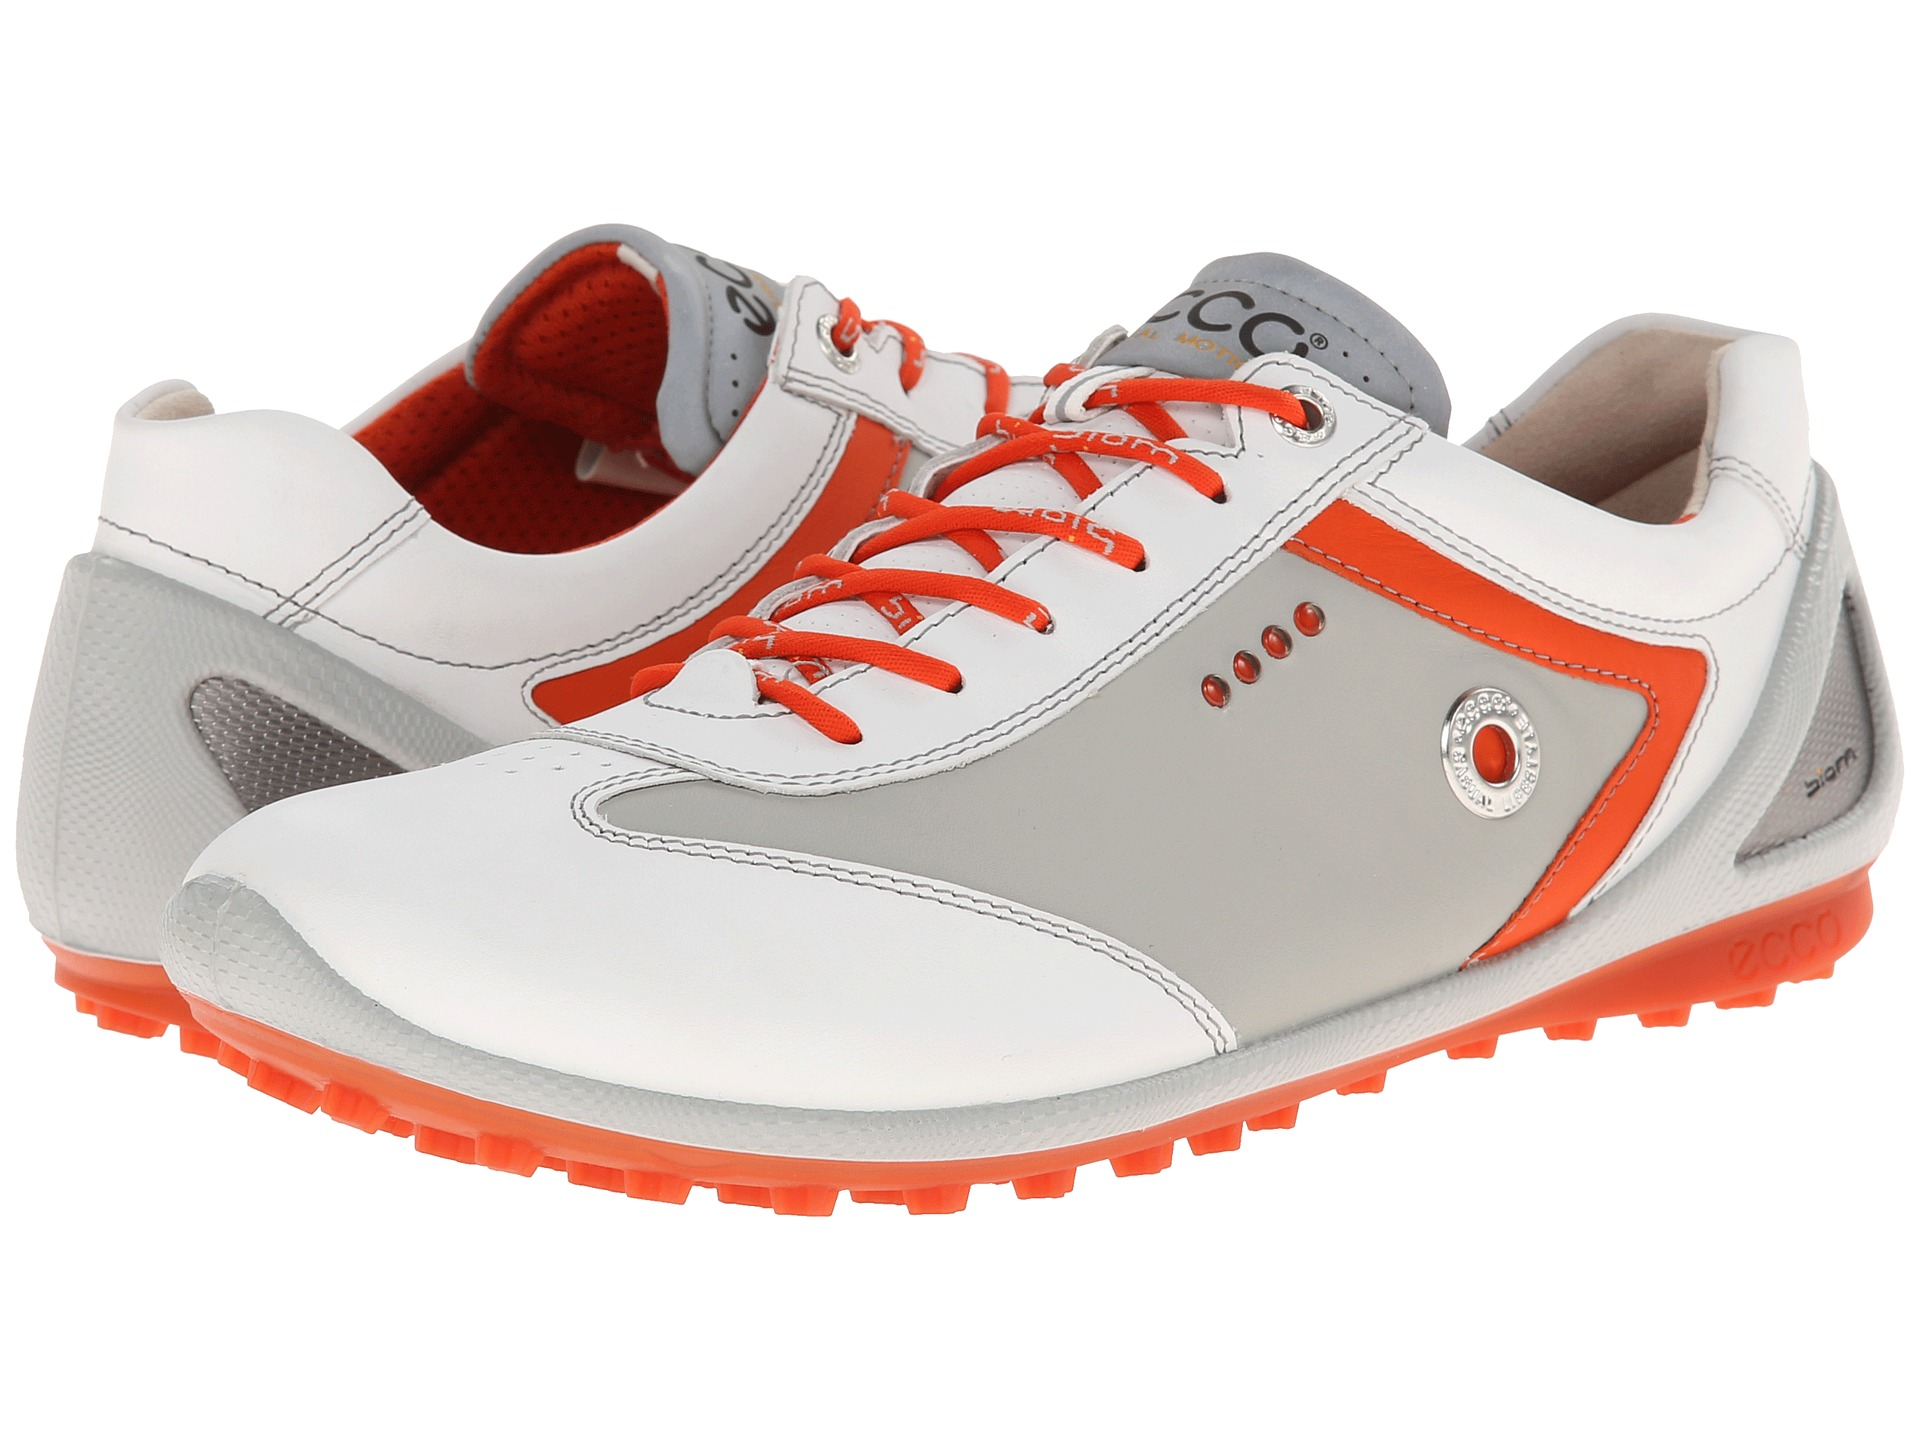 Ecco Golf Shoes For Wide Feet